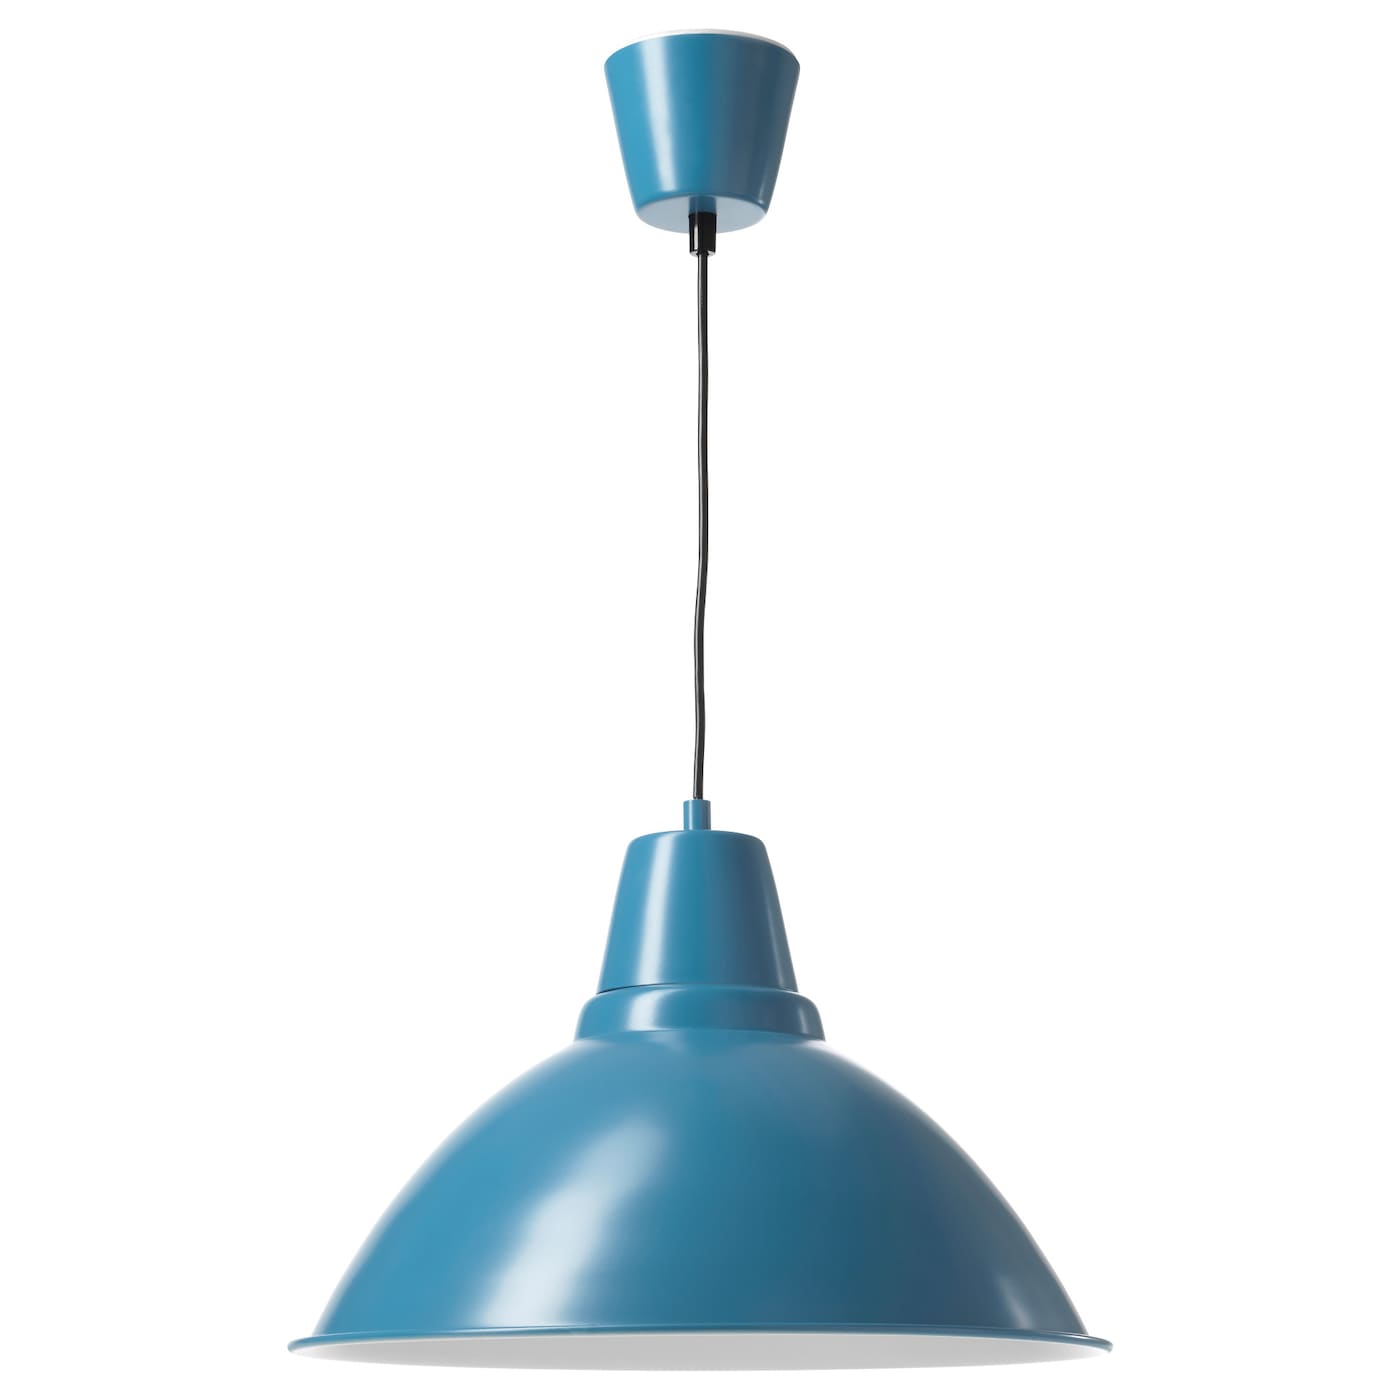 foto pendant lamp blue 38 cm ikea. Black Bedroom Furniture Sets. Home Design Ideas